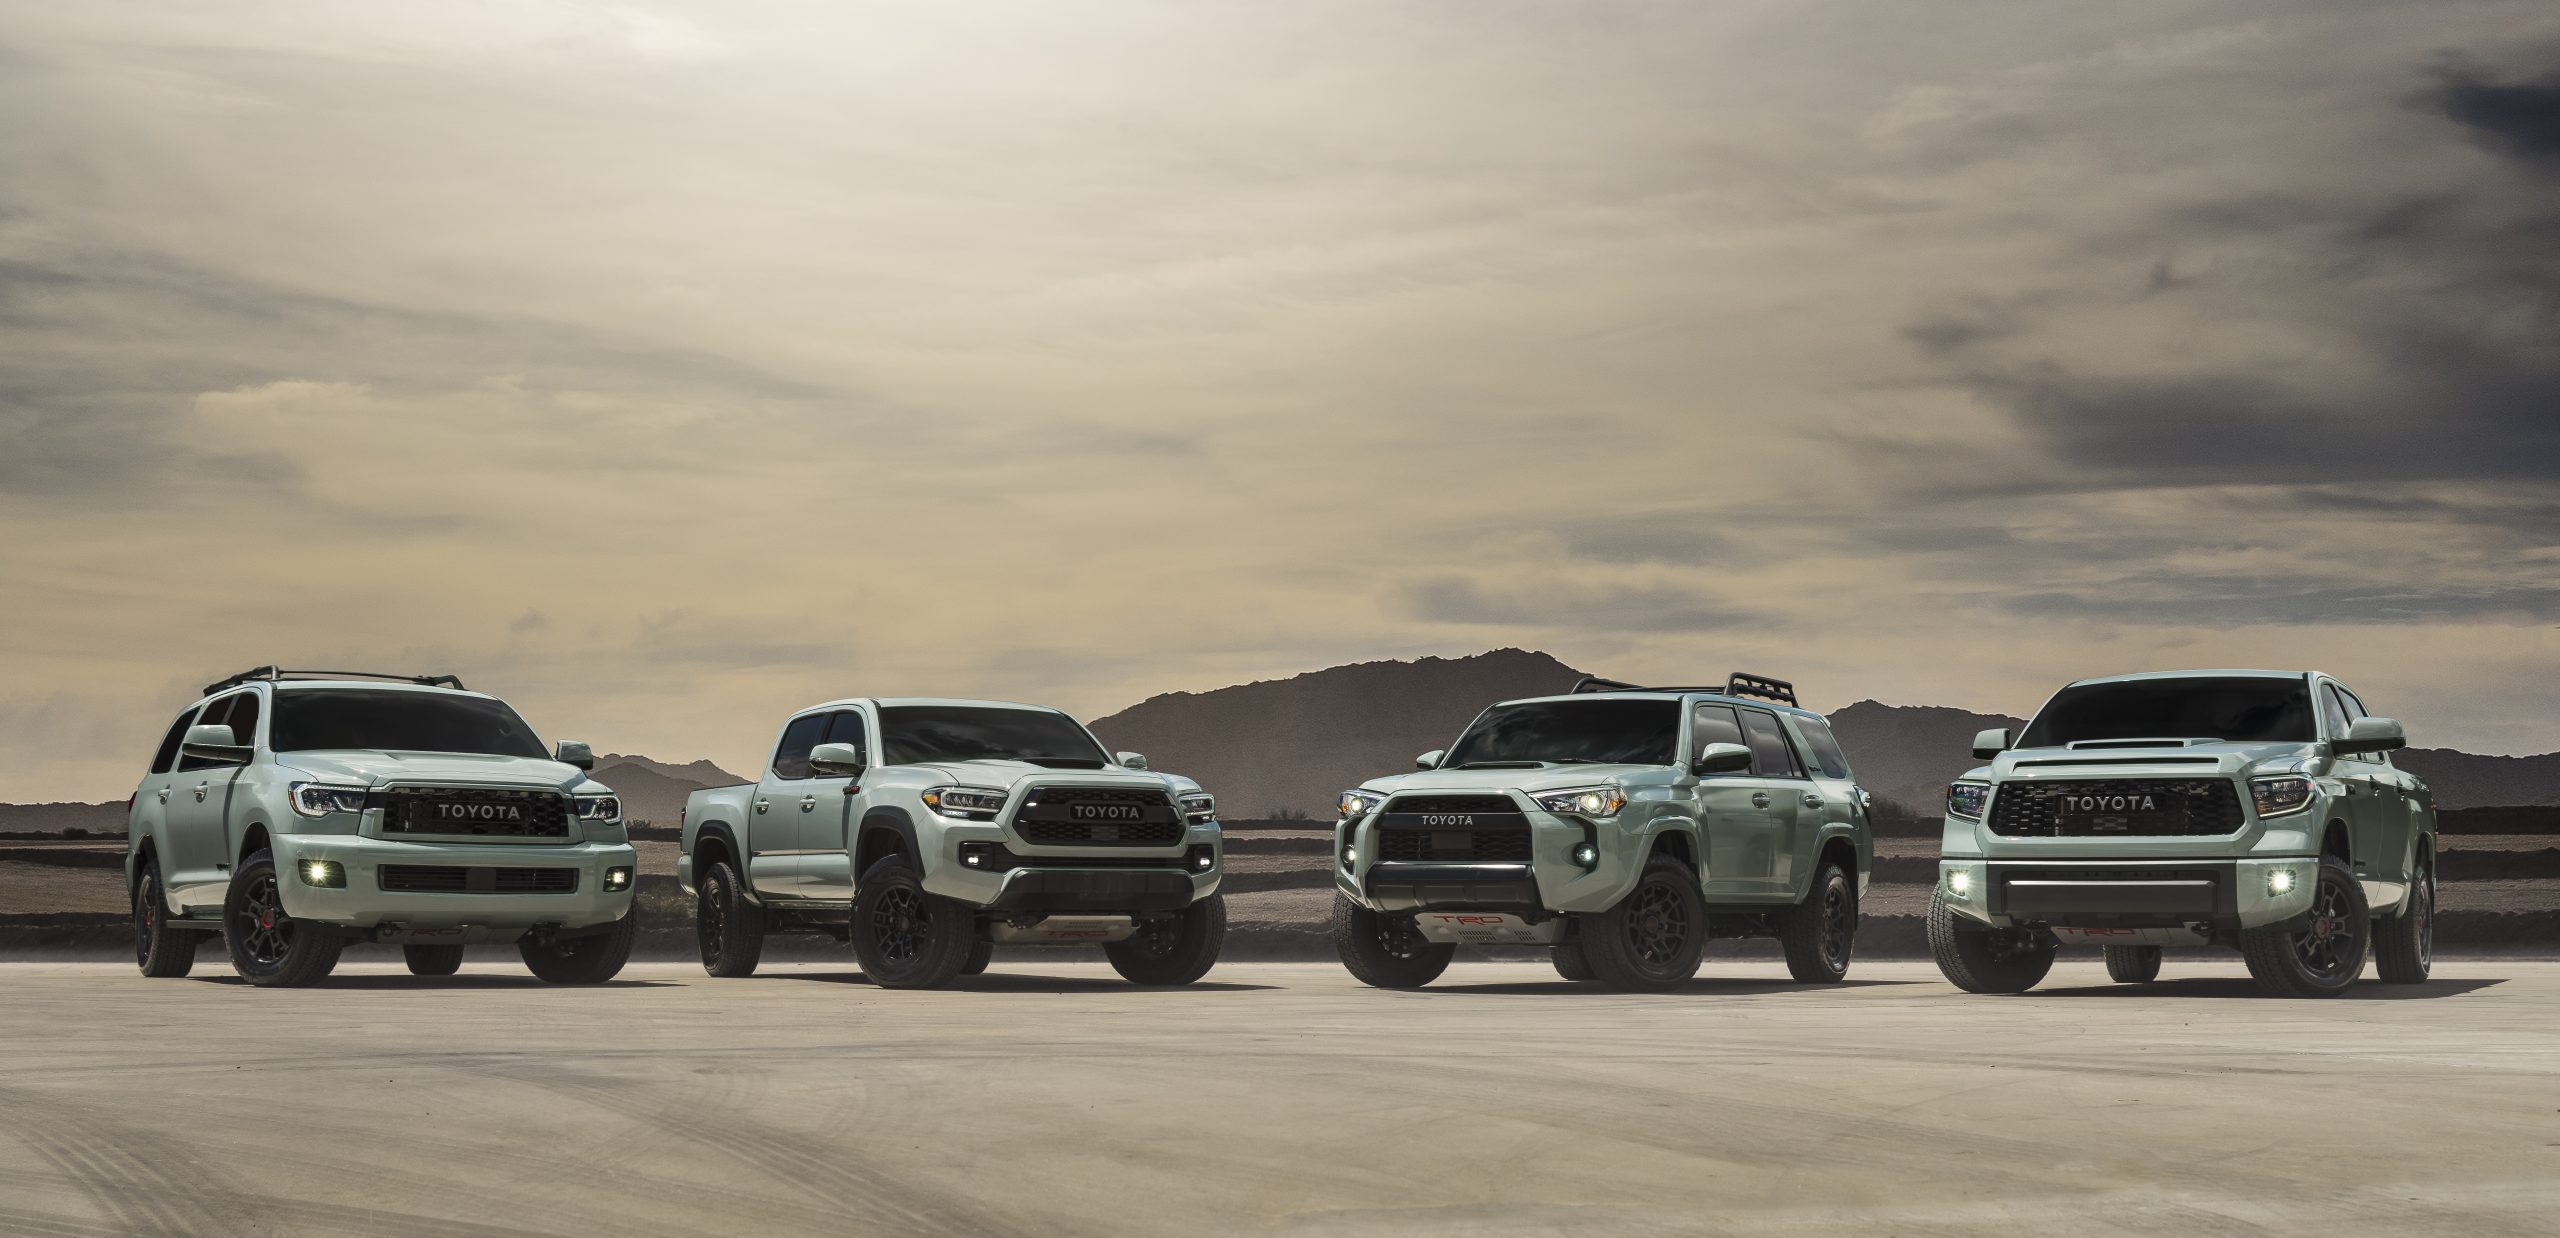 Trd Pro To Add Out Of This World Color For 2021 Models Toyota Usa Newsroom